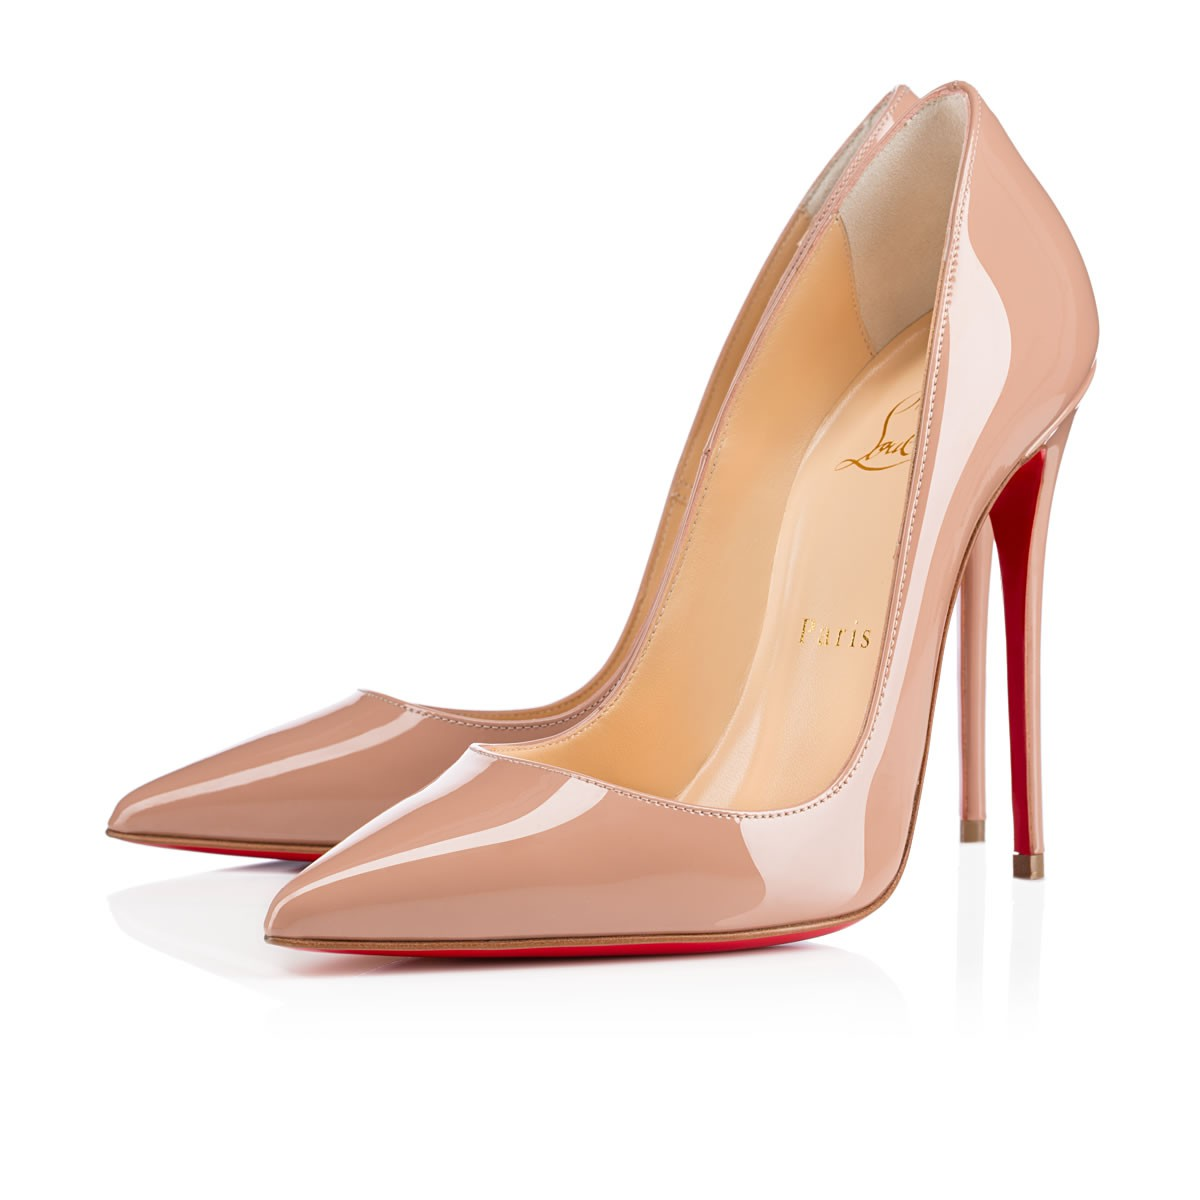 52685304123 So Kate 120 Nude Patent Leather - Women Shoes - Christian Louboutin